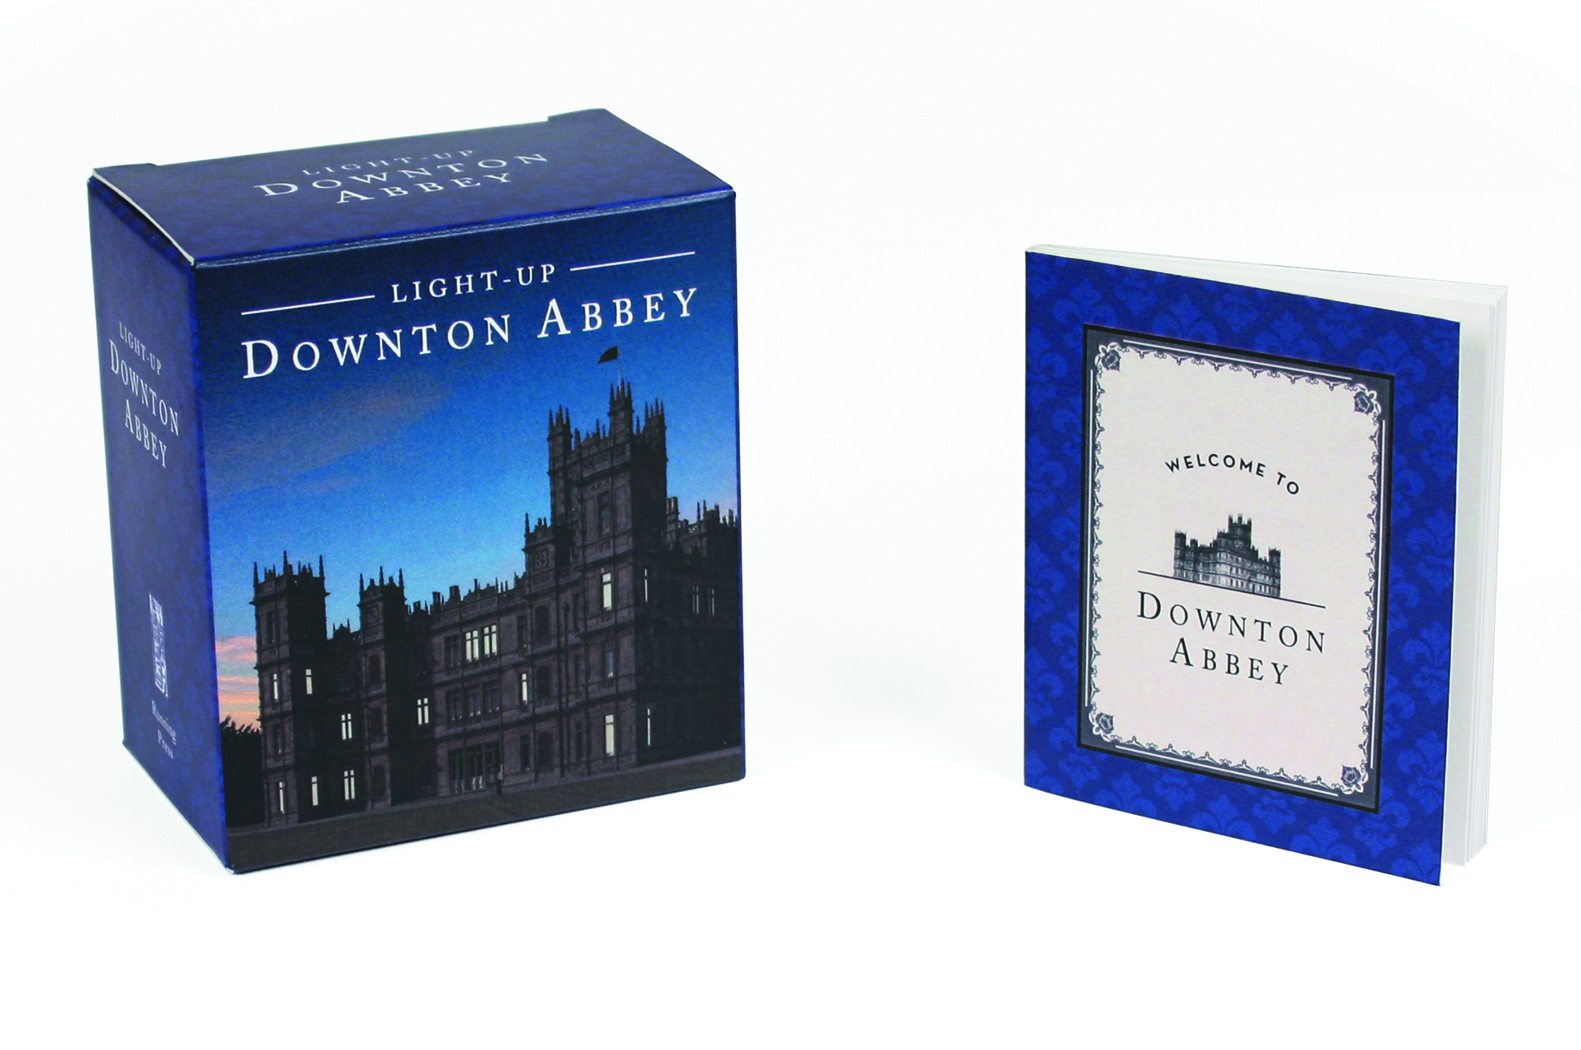 DOWNTON ABBEY LIGHT UP MINIATURE BOOK KIT